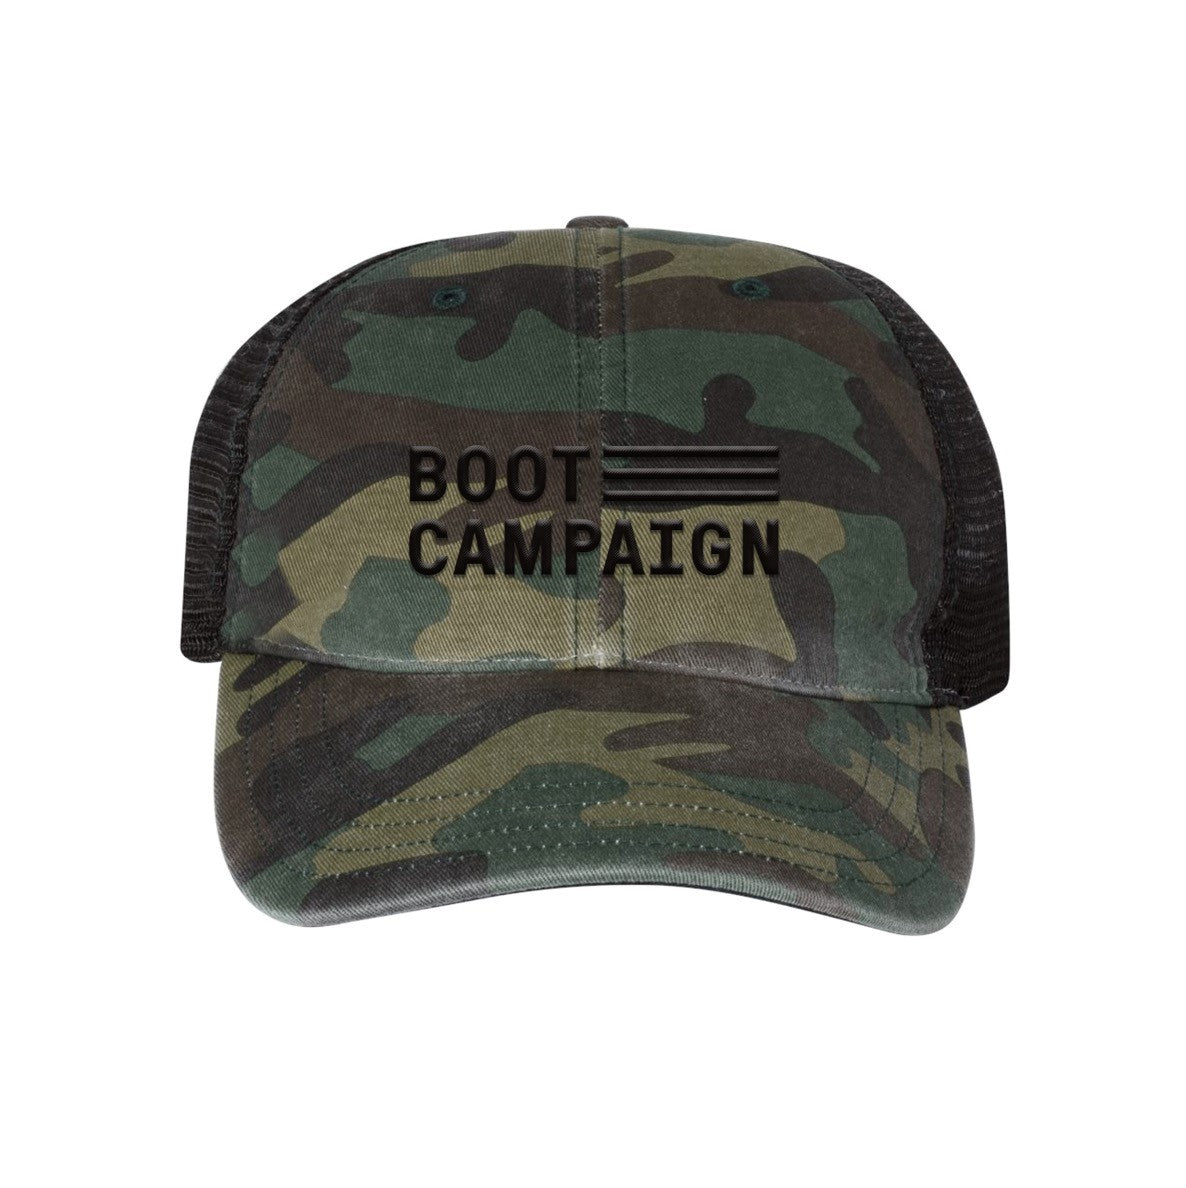 Boot Campaign Washed Camo Hat